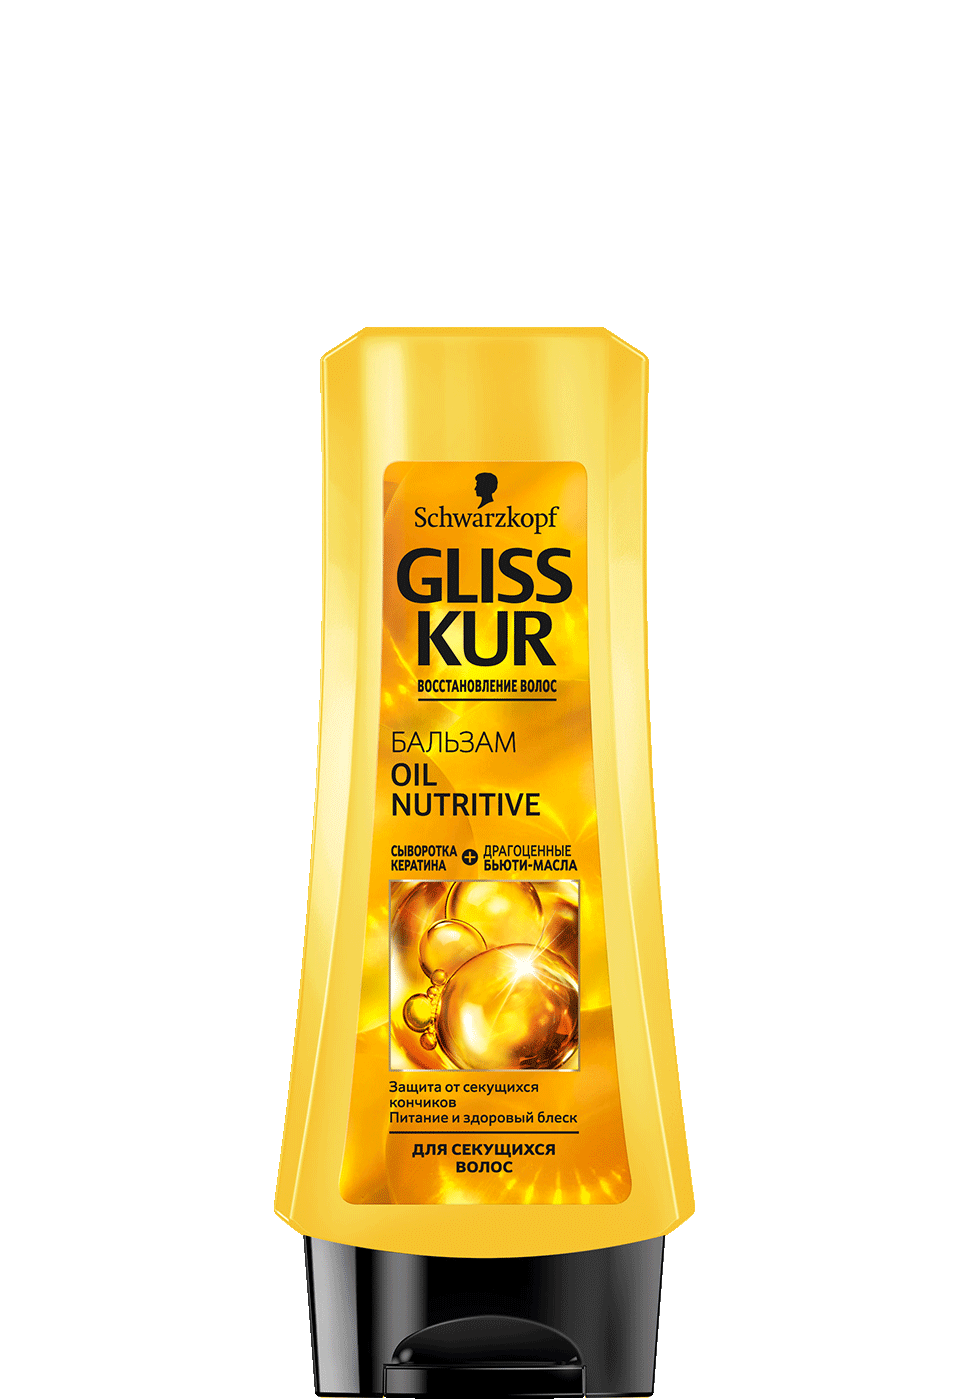 glisskur_ru_oil_nutritive_conditioner_970x1400